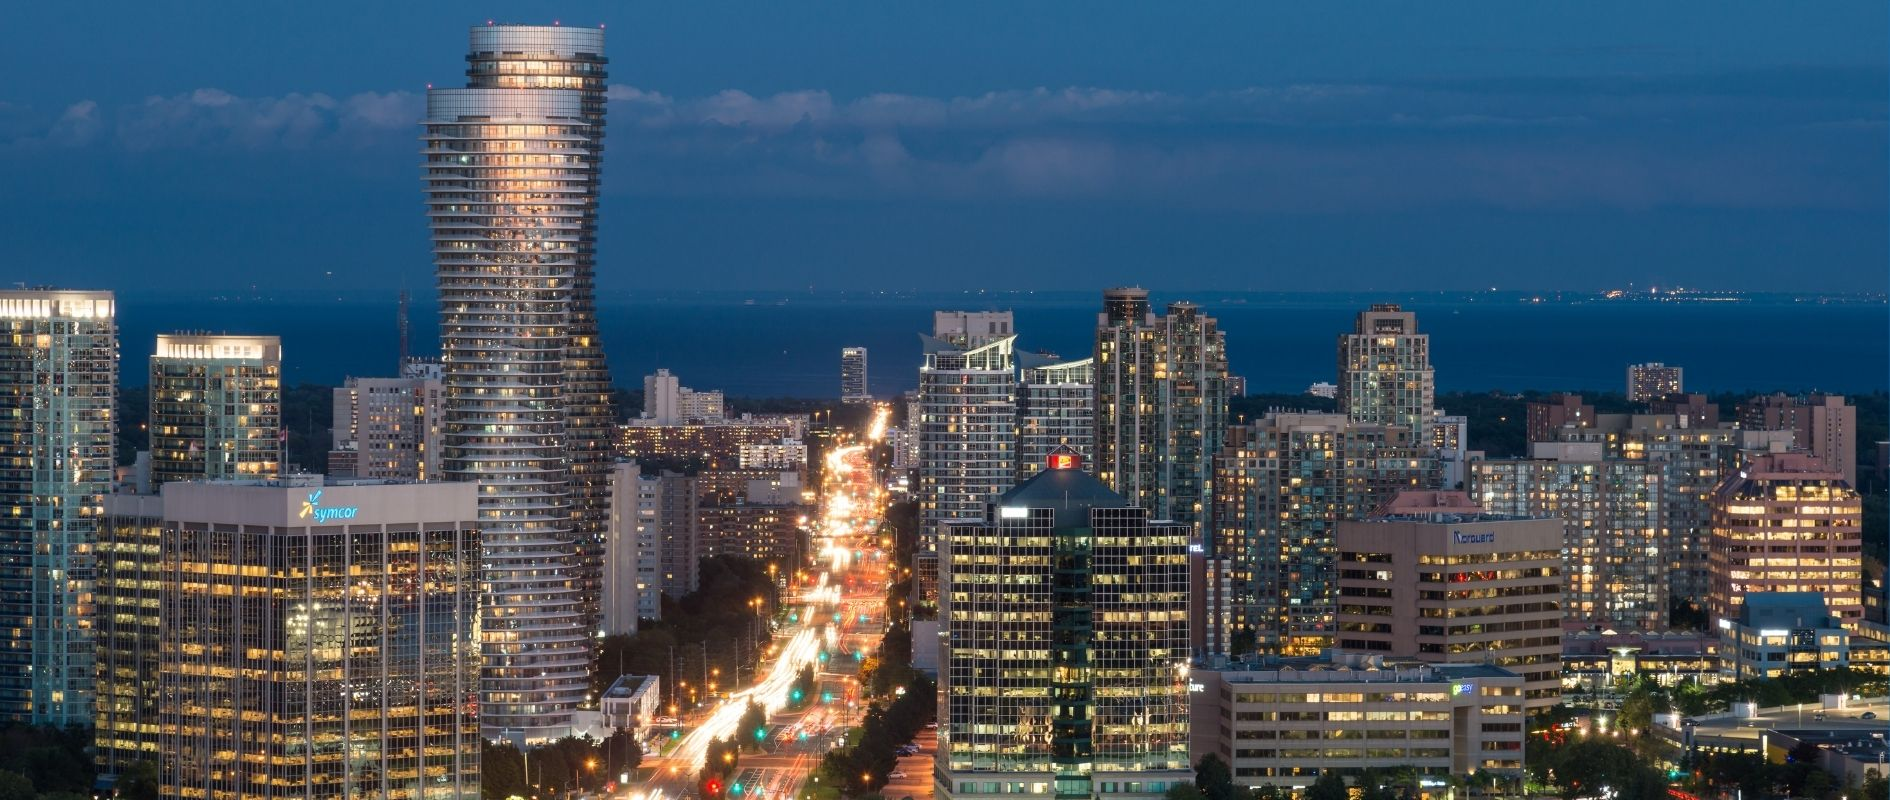 Perspective Mississauga, a resilient city that is working together to build back to better